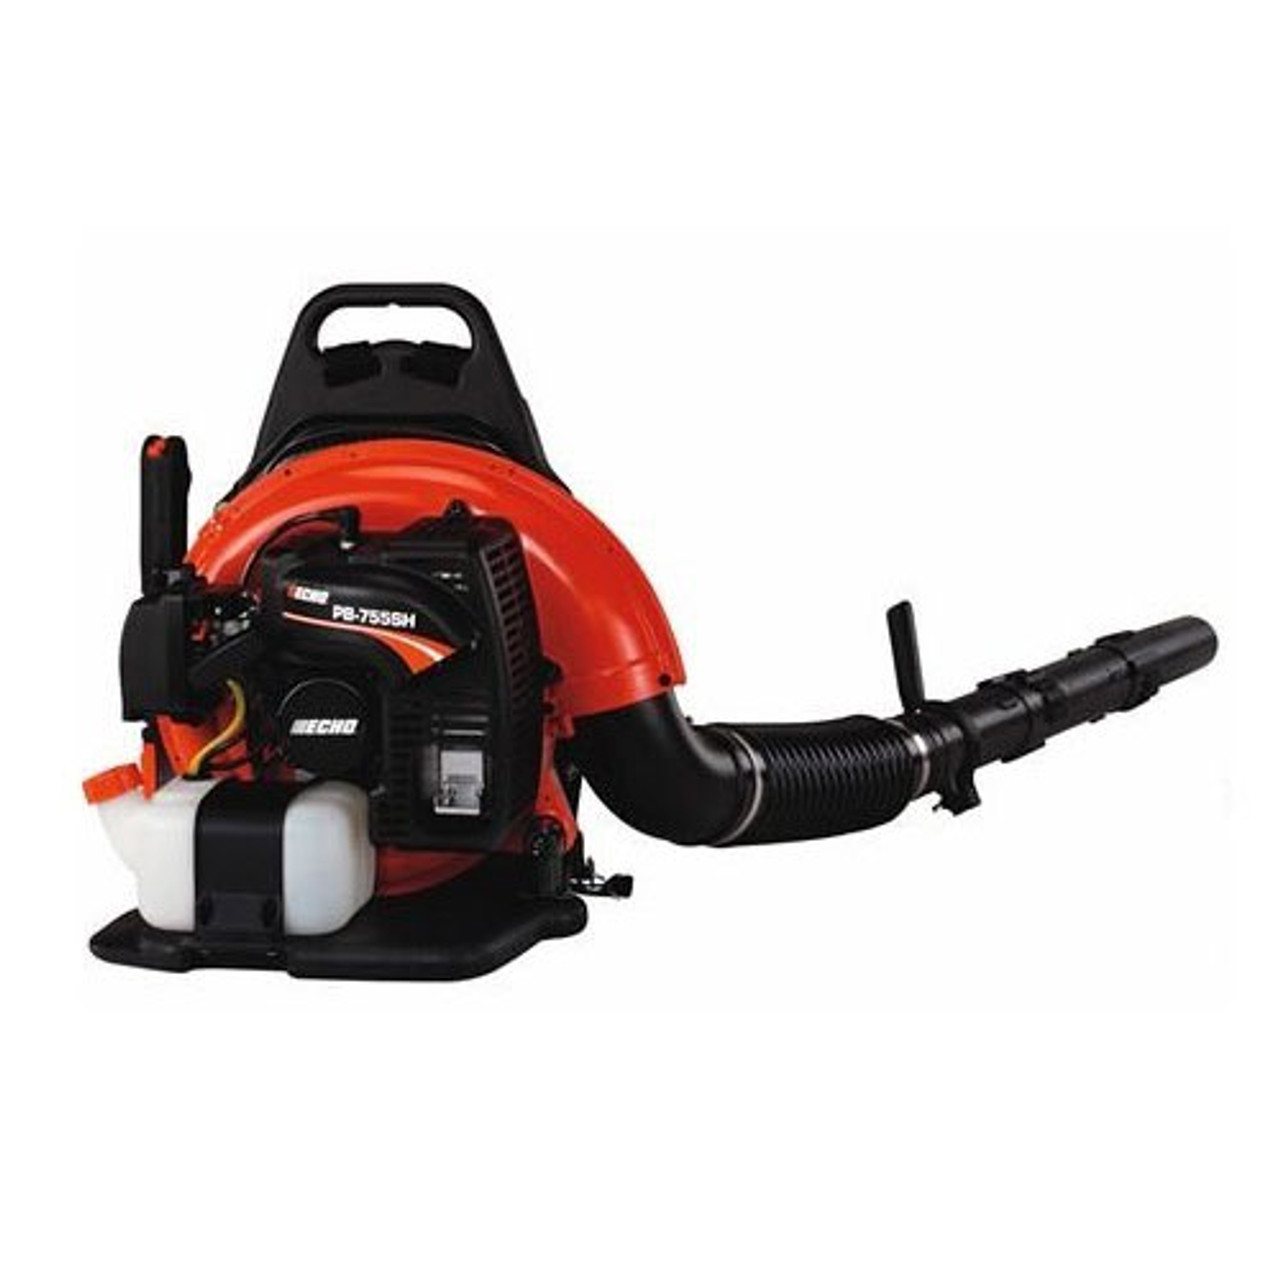 Echo Pb 755sh 63 3 Cc Gas Backpack Leaf Blower With Hip Mounted Throttle